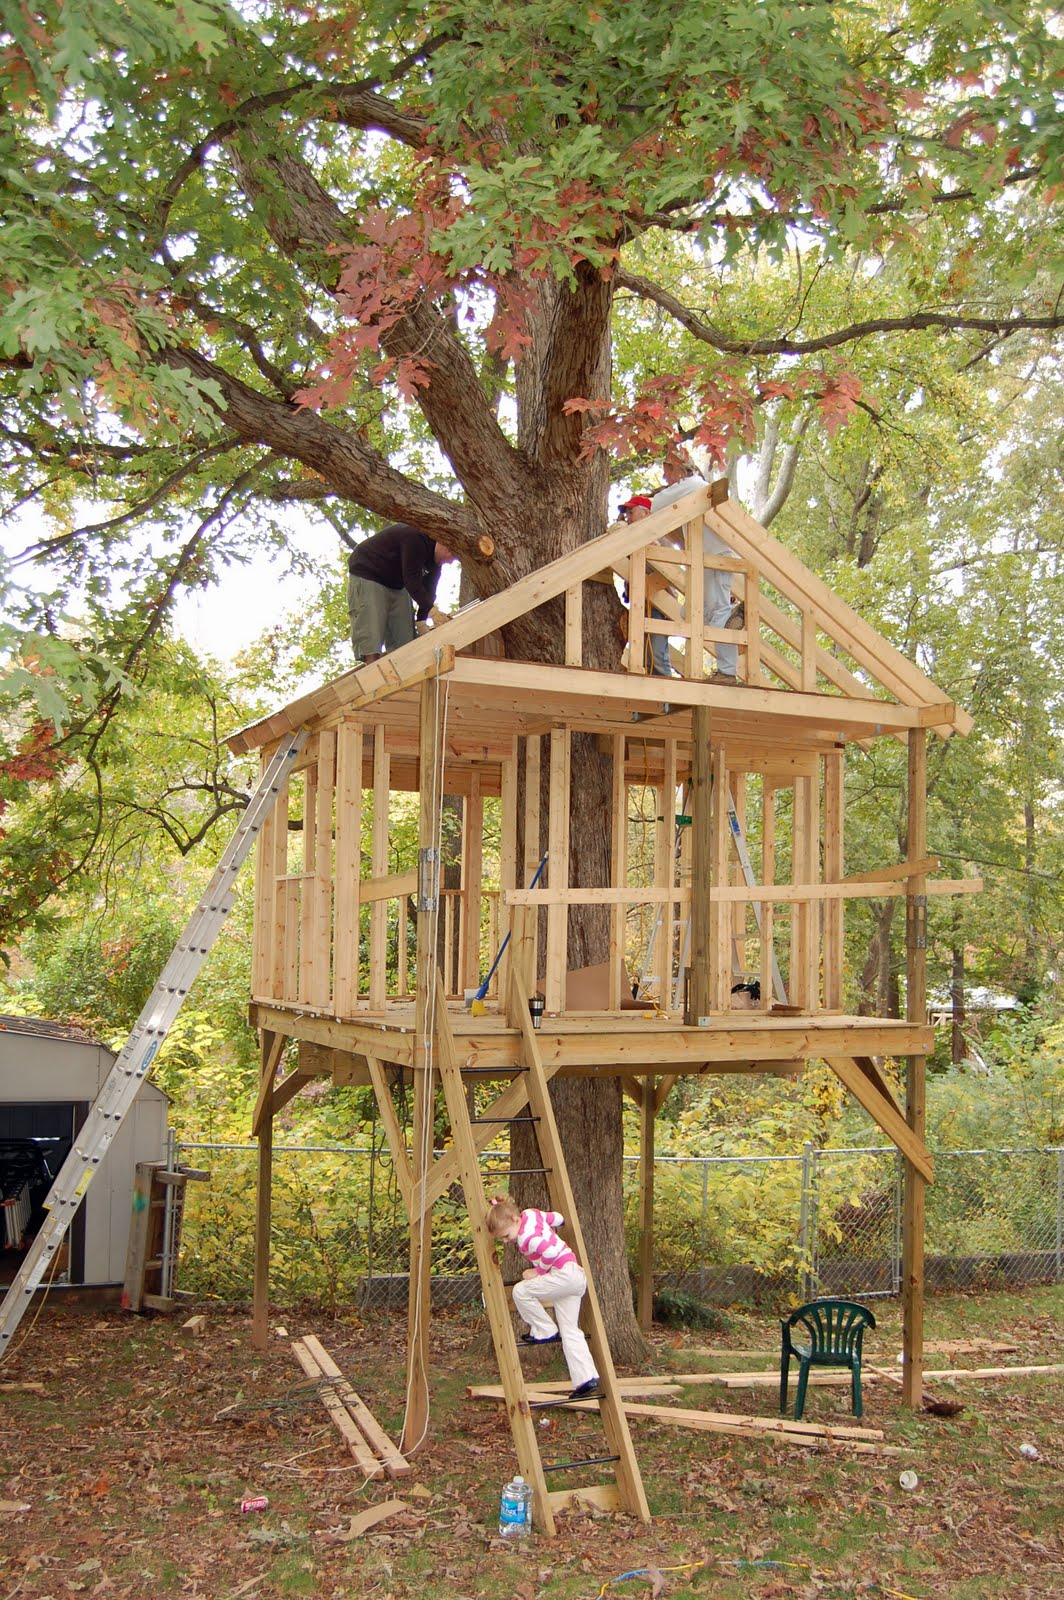 Pictures of tree houses and play houses from around the world plans and build tips guides Build a house online